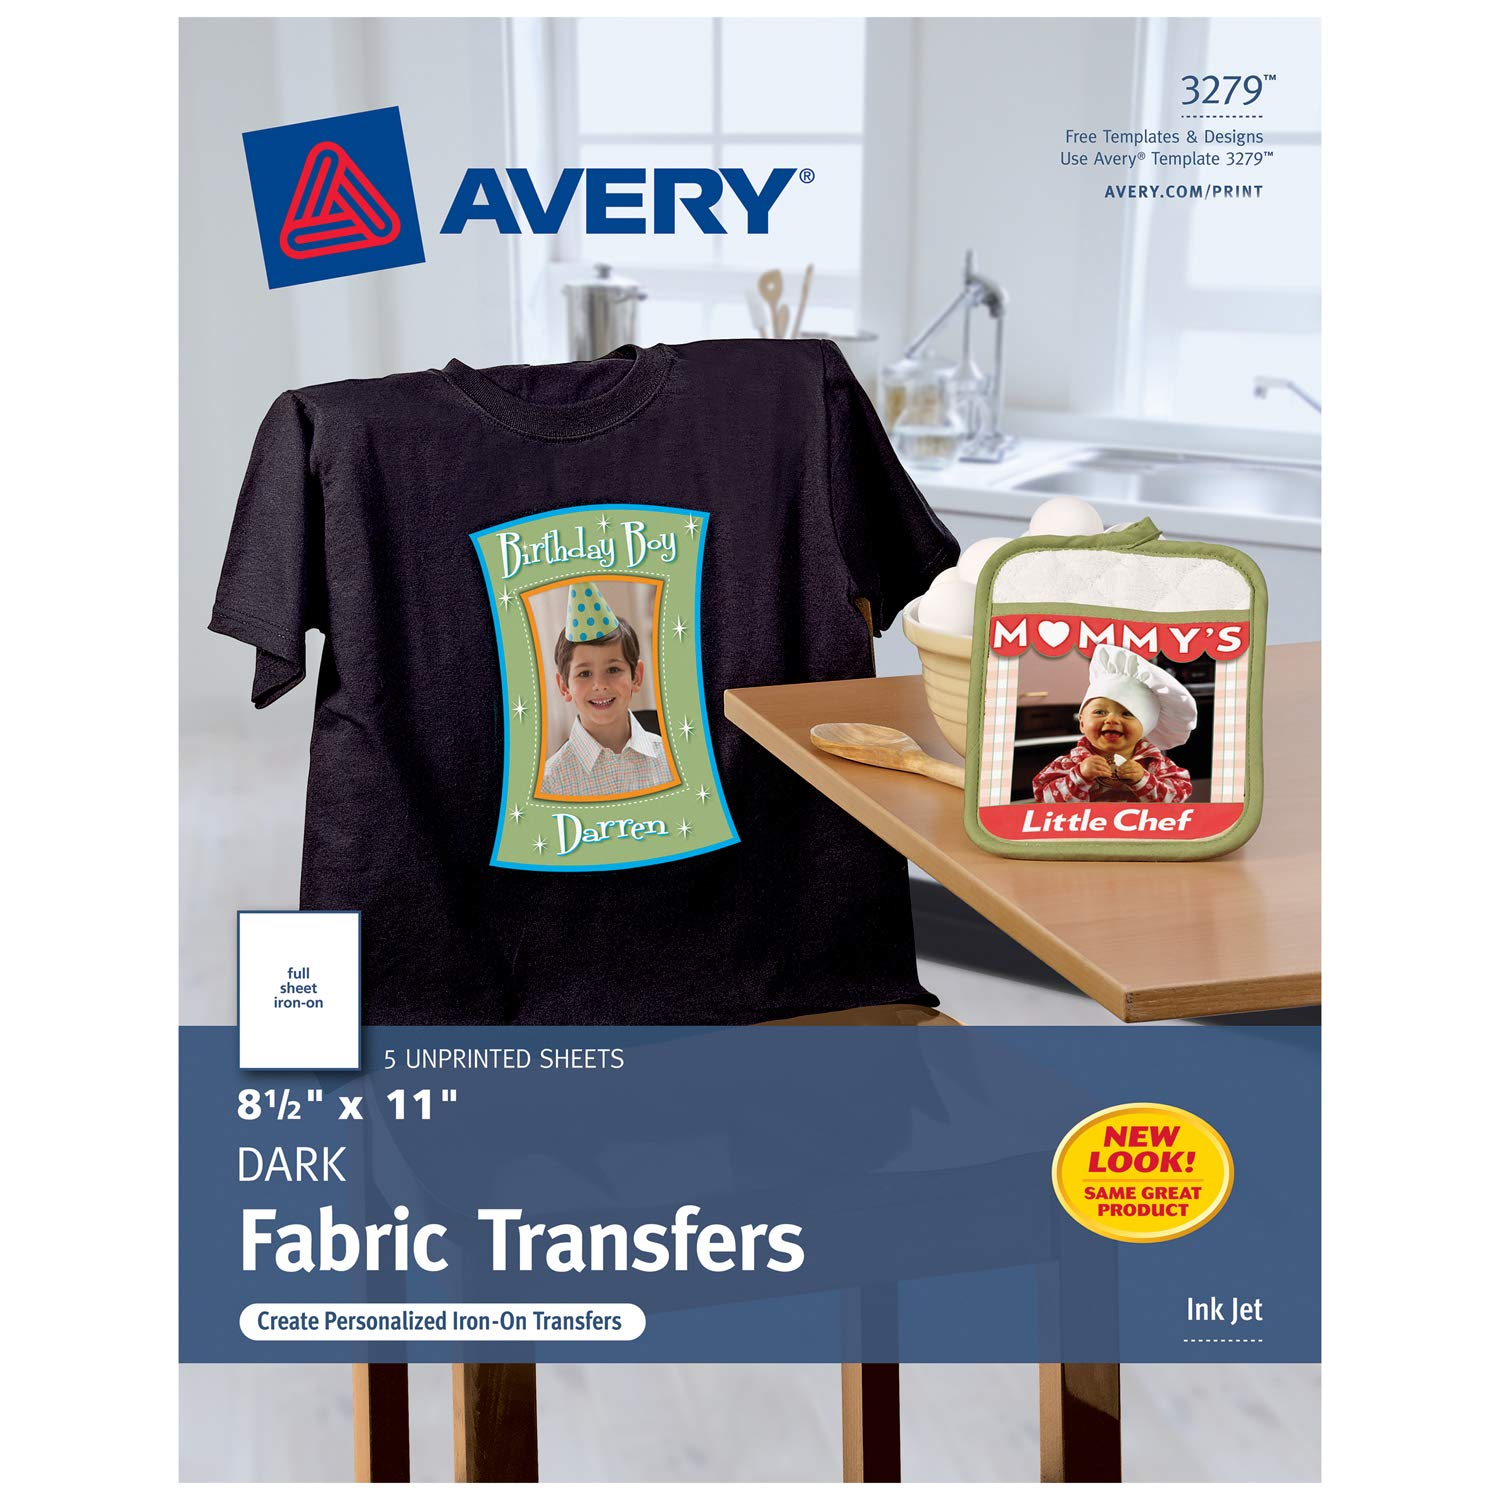 Avery Printable T-Shirt Transfers, for Use On Dark Fabrics, Inkjet, 30 Paper Transfers (3279) by AVERY